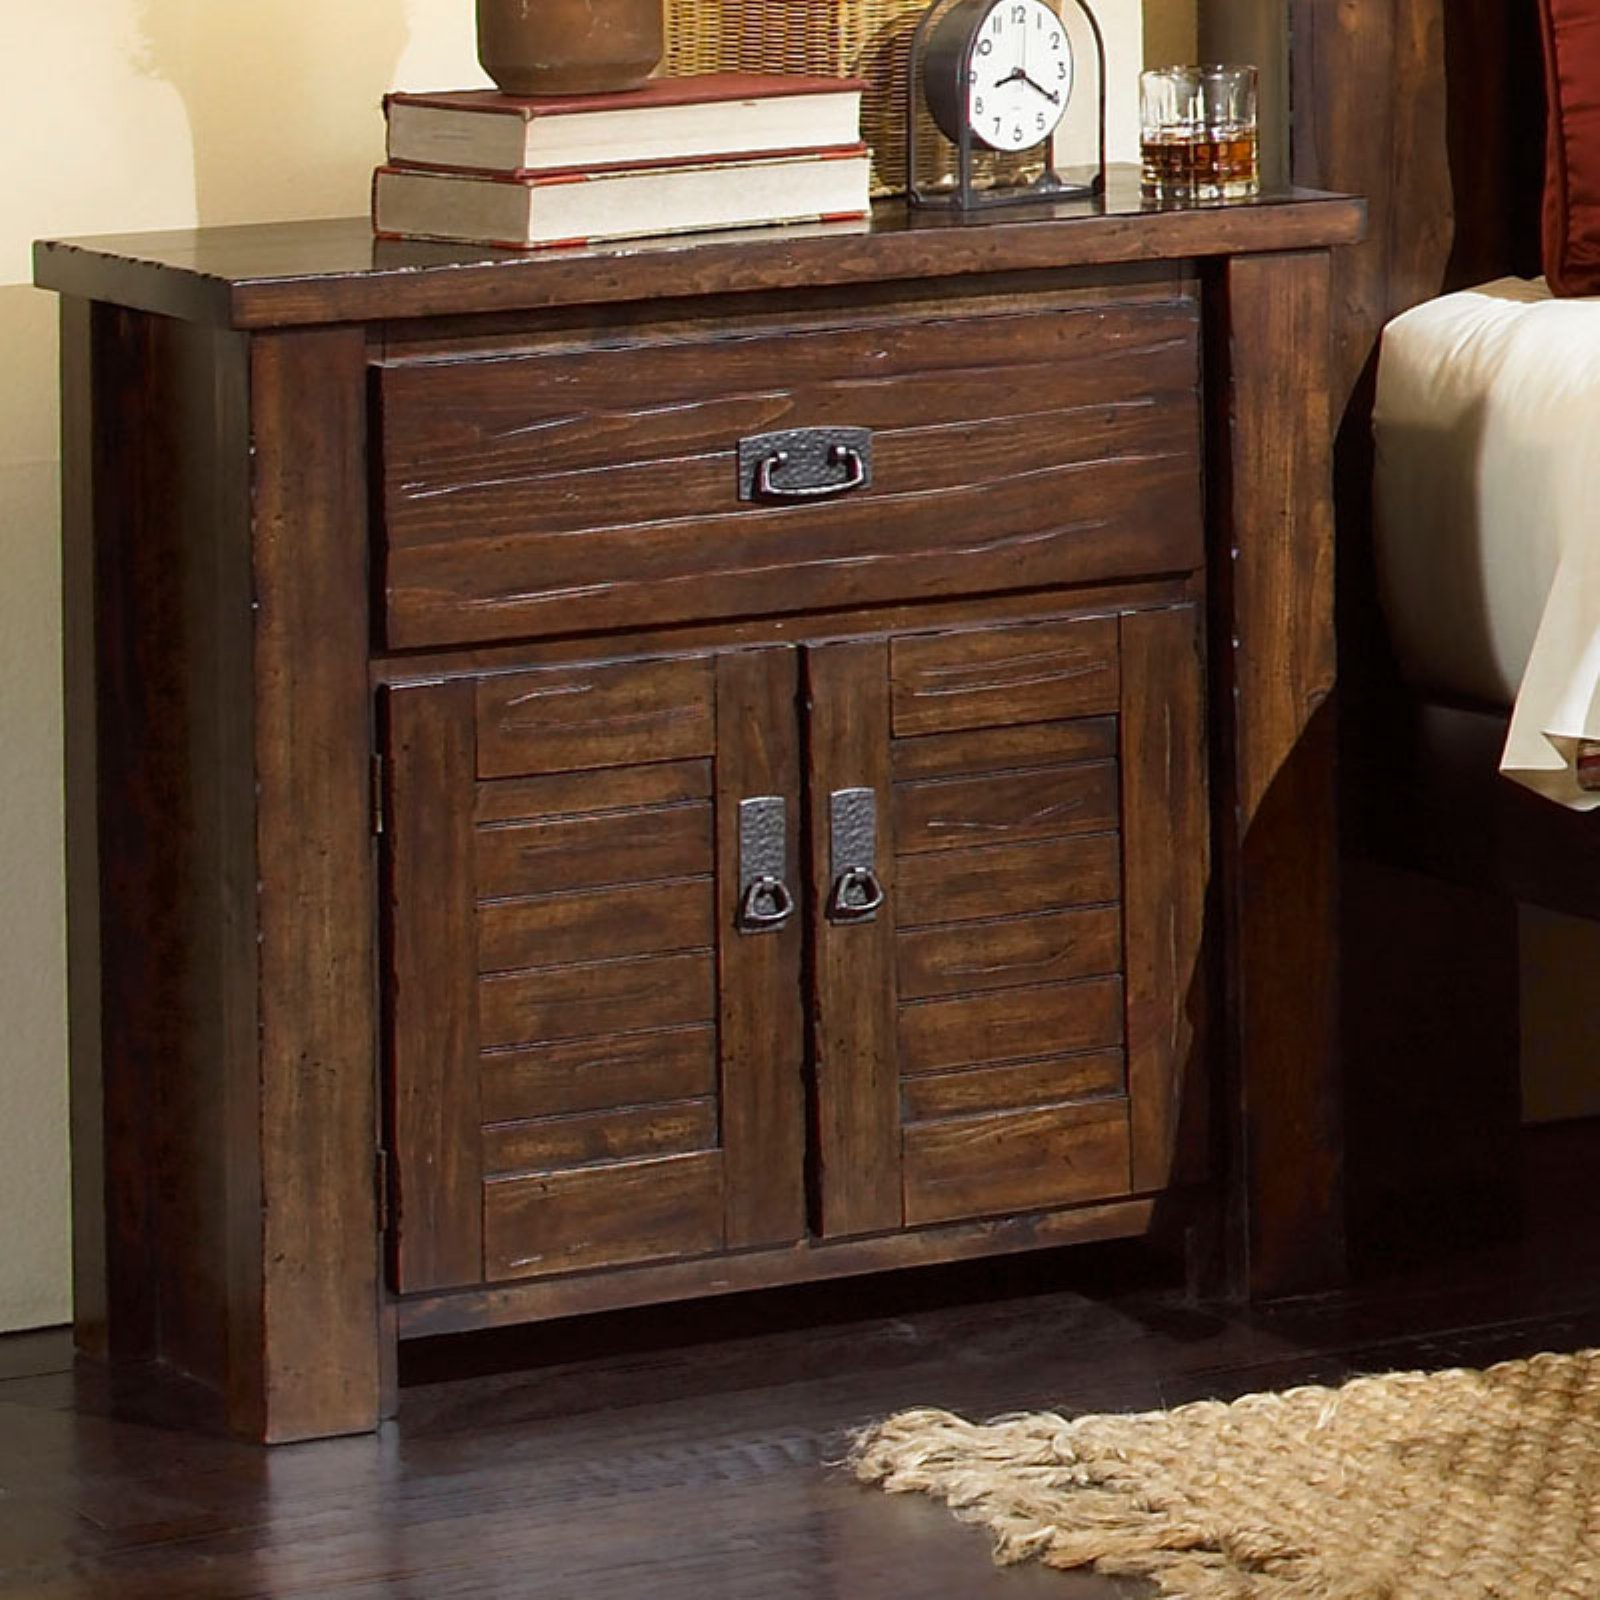 Progressive Furniture Trestlewood 1 Drawer Nightstand - Mesquite Pine